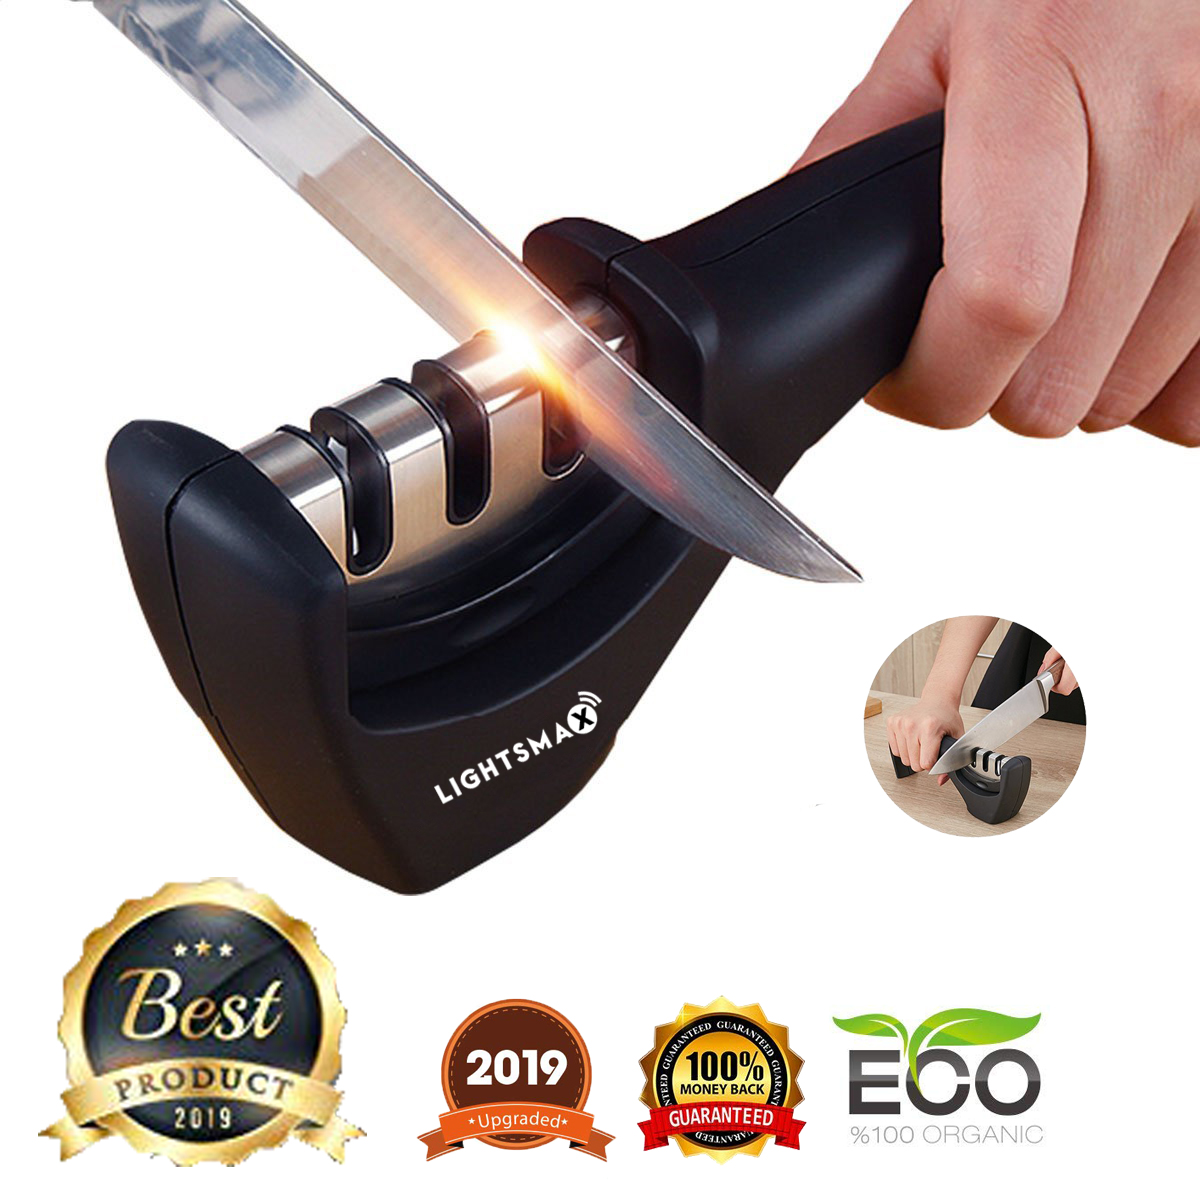 Kitchen Knife Sharpener - 3-Stage Knife Sharpening Tool Helps Repair, Restore and Polish Blades